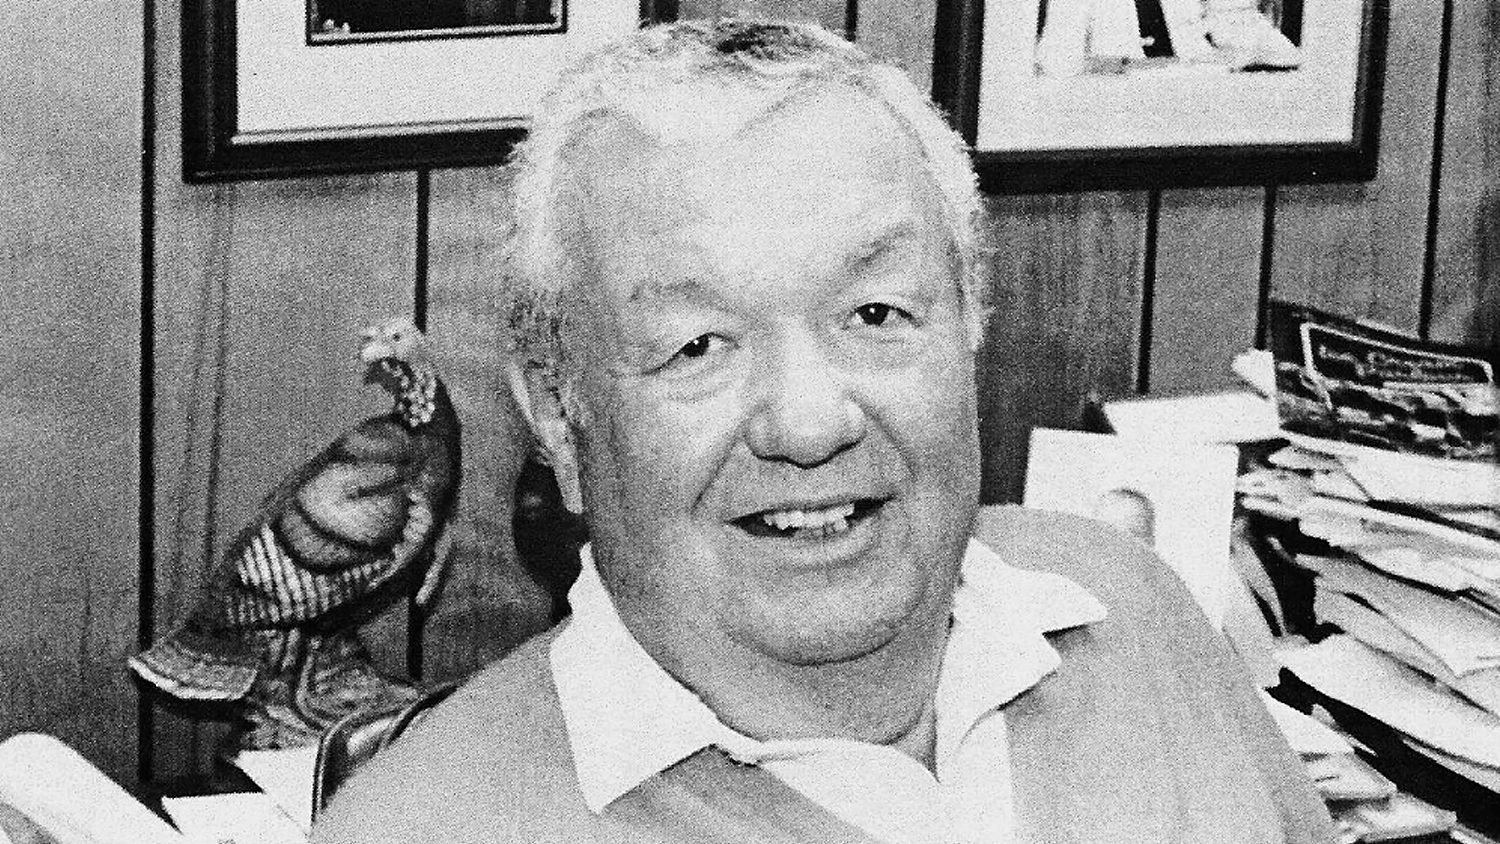 Marvin Johnson, founder of the House of Raeford and 1998 inductee to the Poultry Hall of Fame.